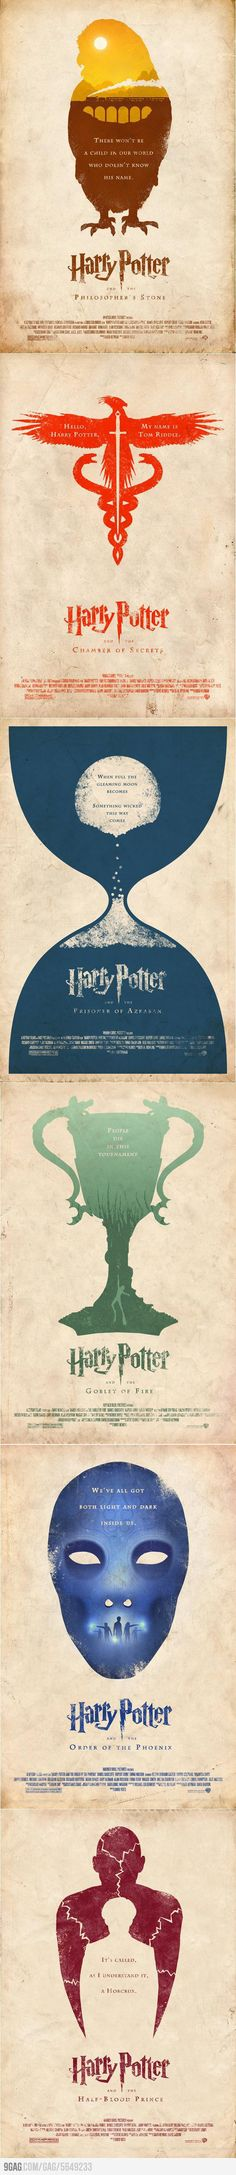 Different Poster Version Of Harry Potter Movies